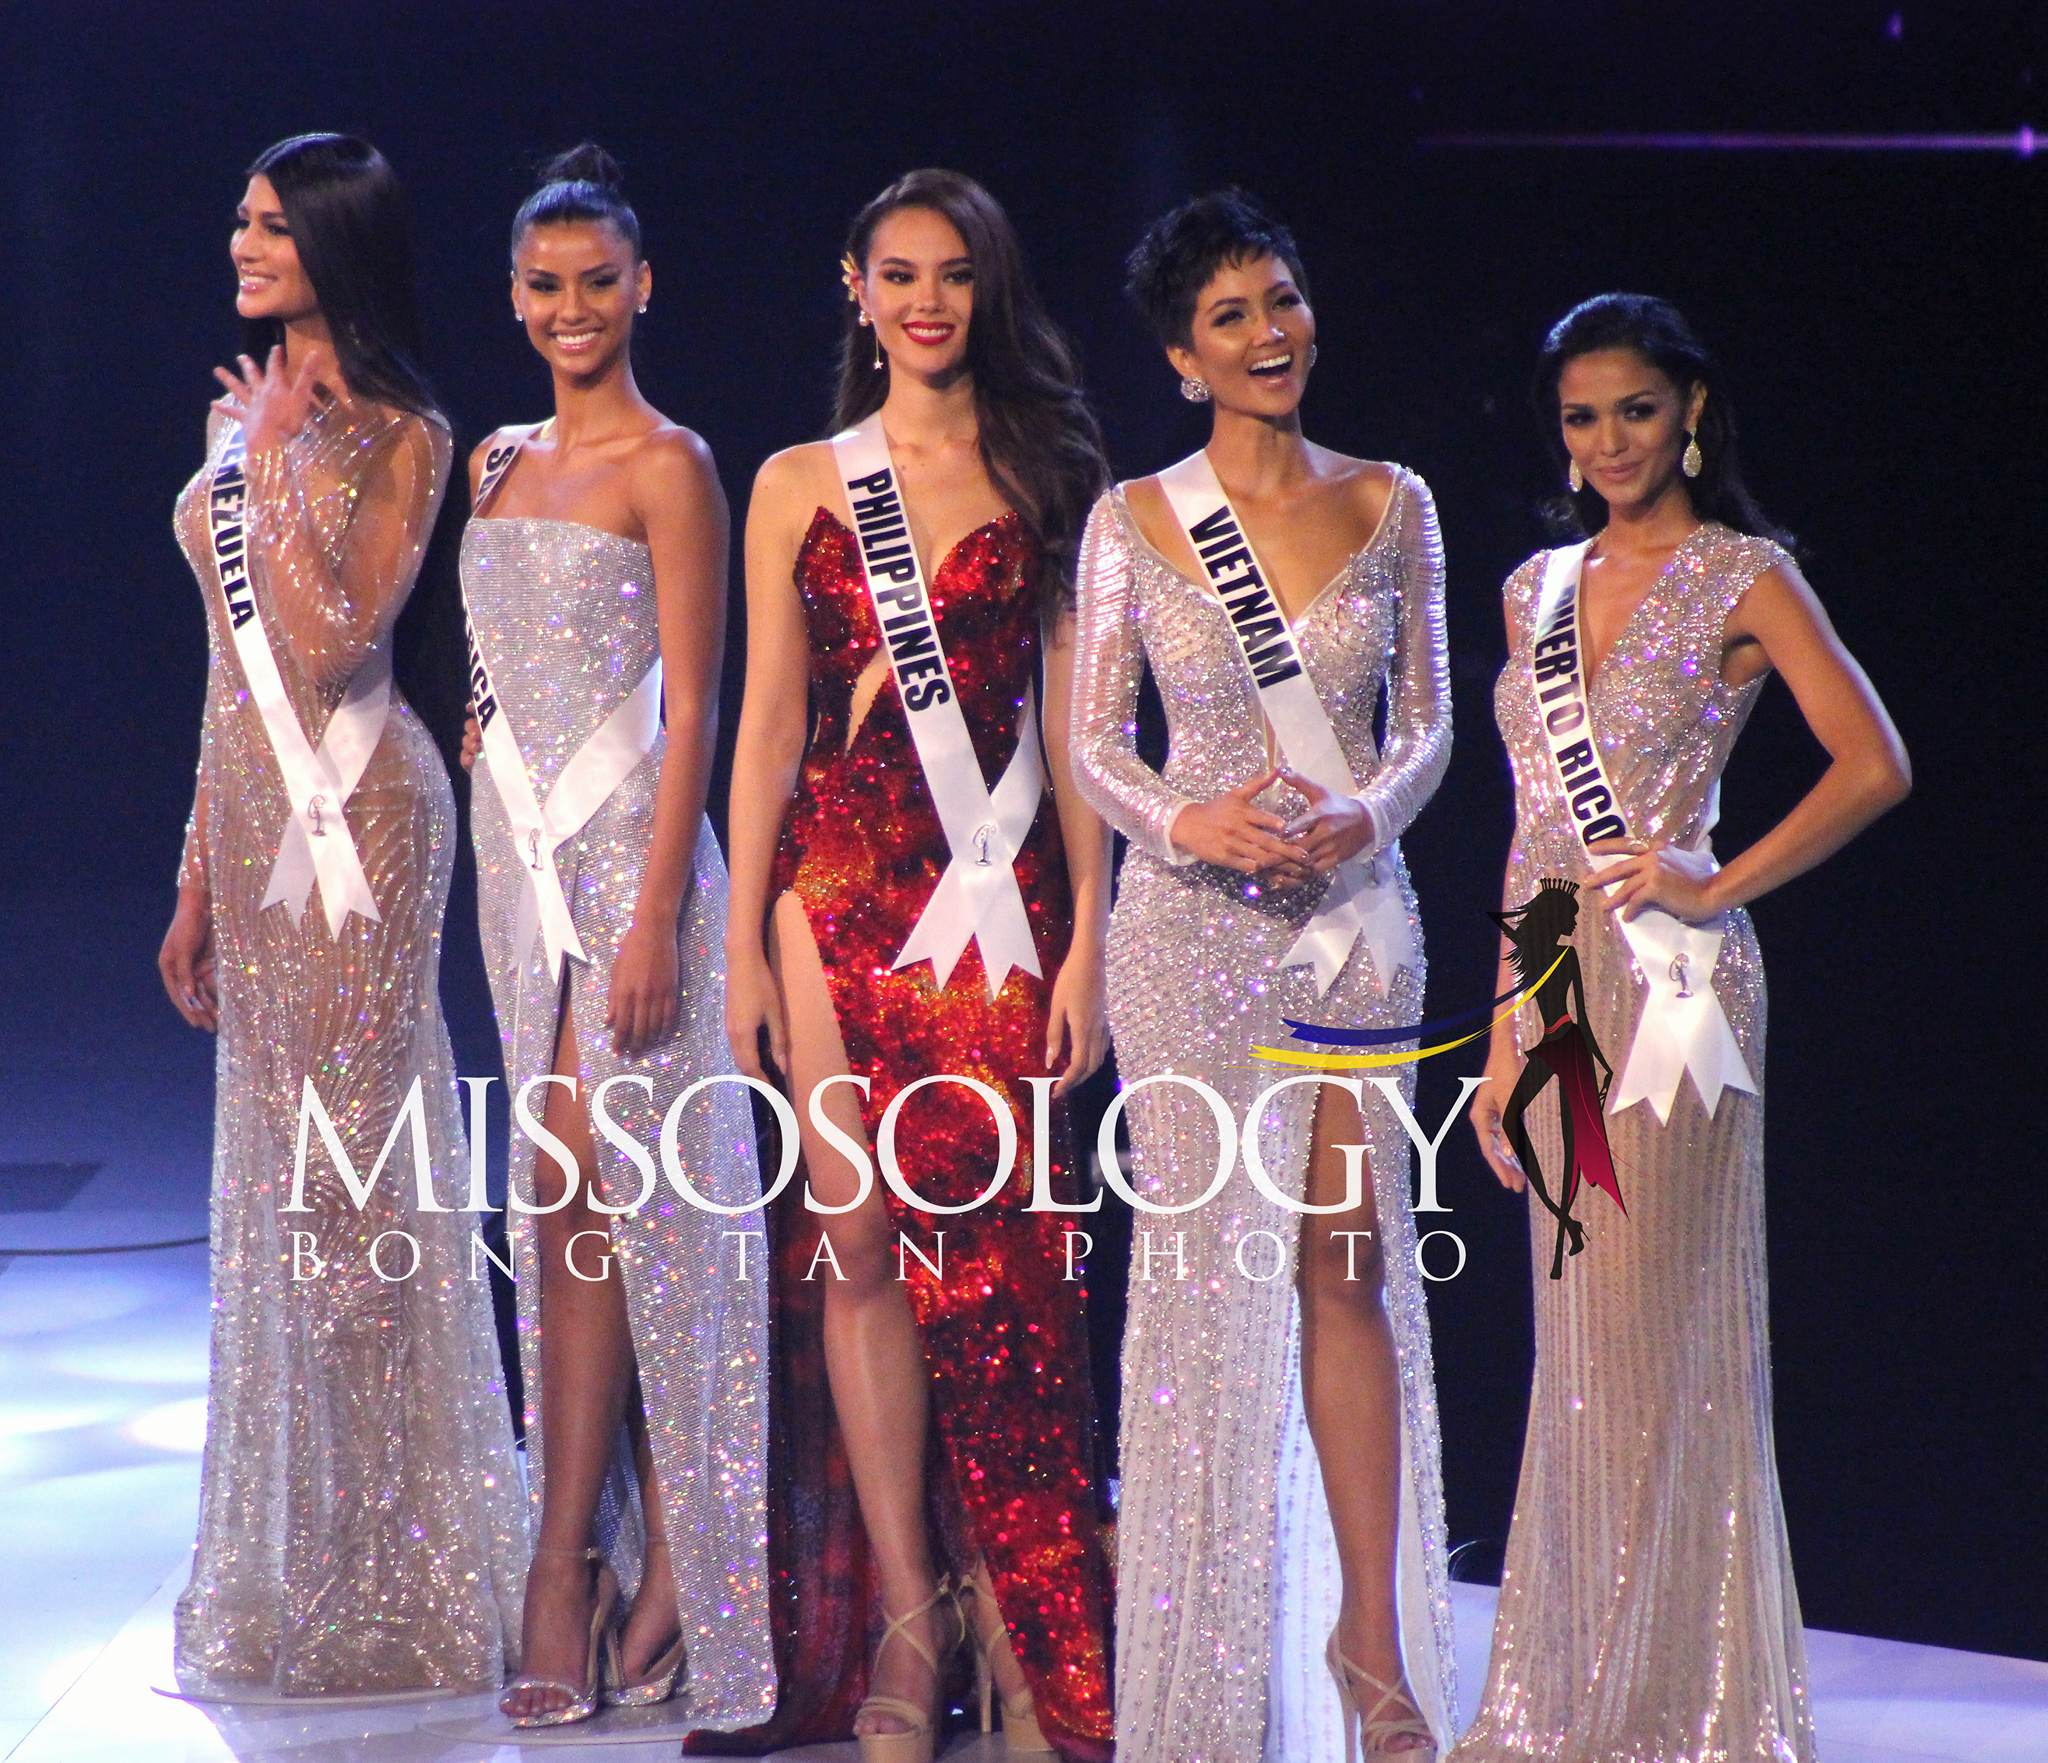 Miss Universe 2018 2019 >> As predicted by Missosology, Miss Universe 2018 is Miss Philippines Catriona Gray - Missosology